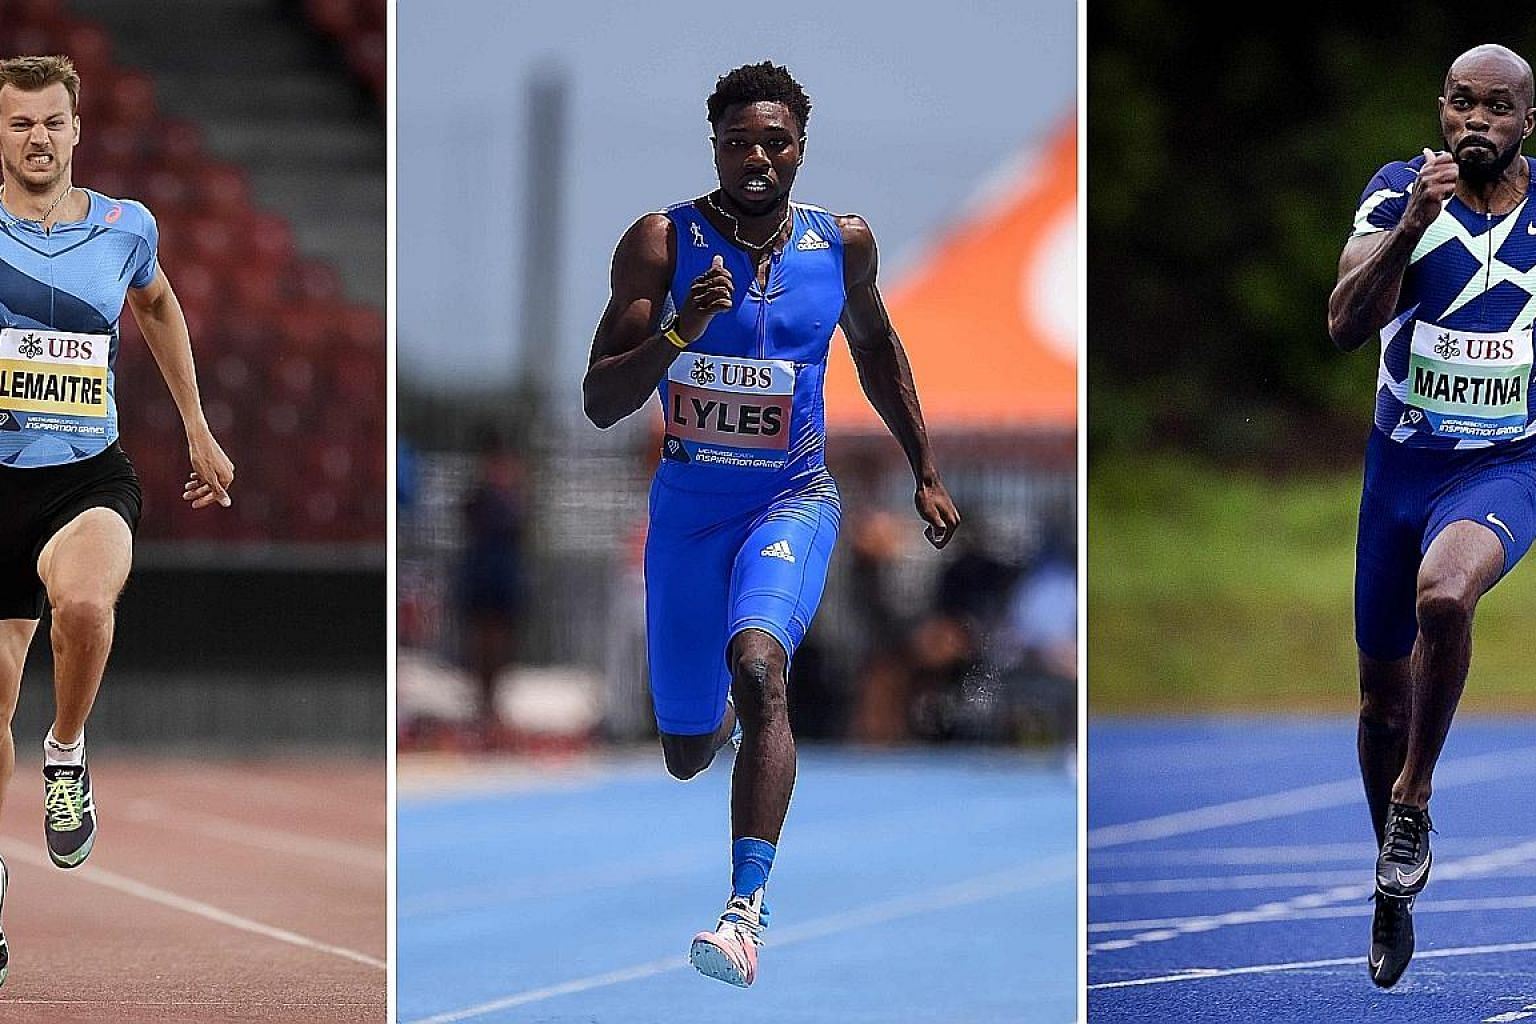 From left: France's Christophe Lemaitre at the Letzigrund Stadium in Zurich, American Noah Lyles at the IMG Academy in Bradenton, Florida, and the Netherlands' Churandy Martina at Papendal in Arnhem. The trio were part of a 200m race, won by Lemaitre